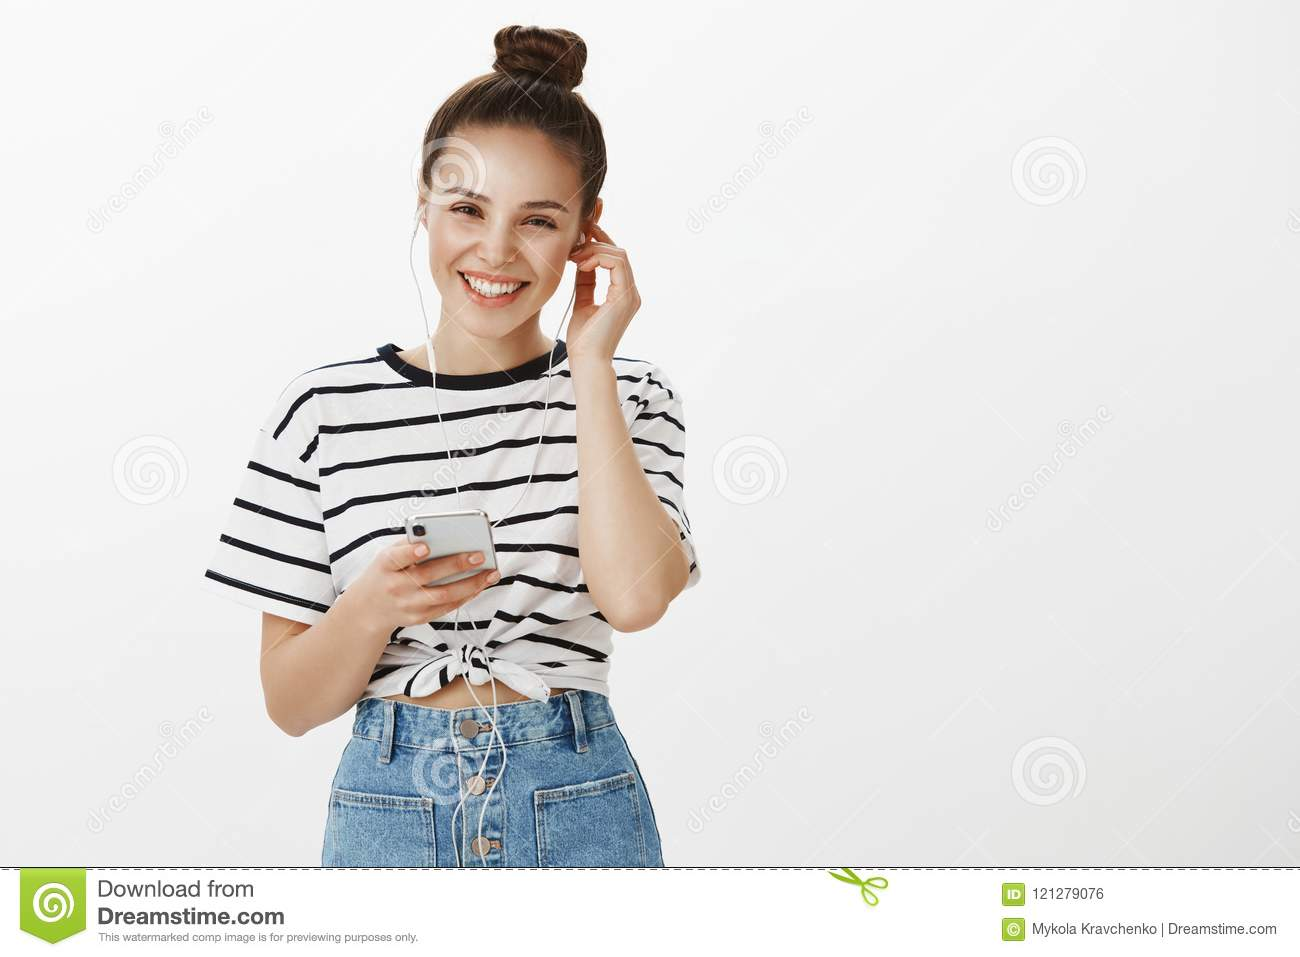 Girl listening voice mail pleased to receive greetings happy good girl listening voice mail pleased to receive greetings happy good looking european female m4hsunfo